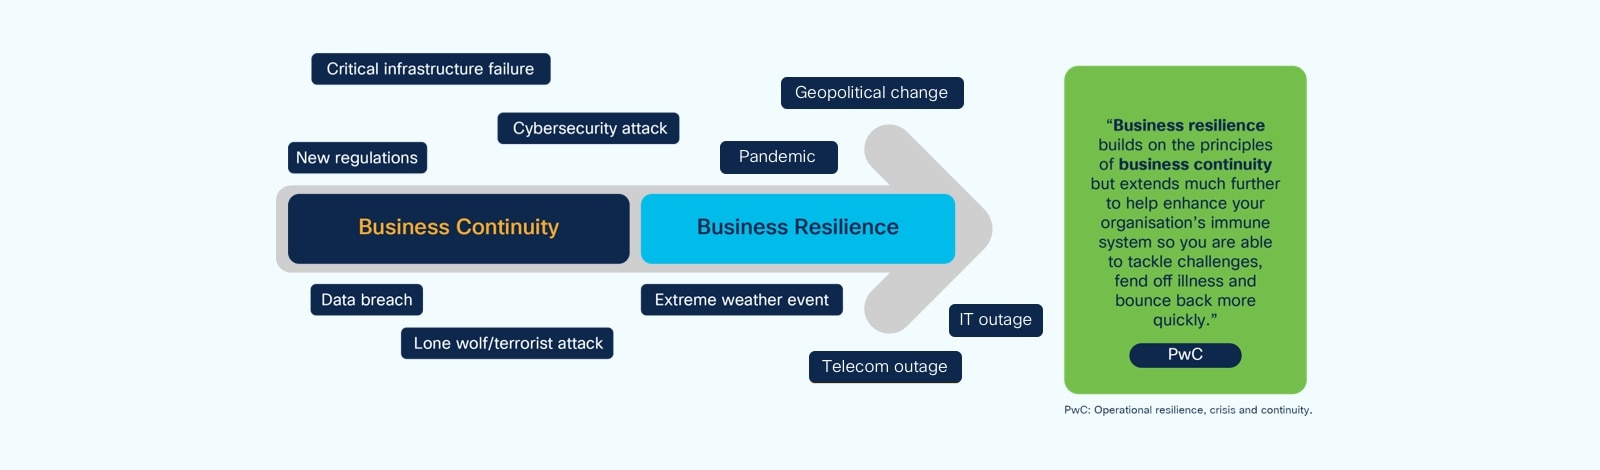 Figure 1. From business continuity to business resilience